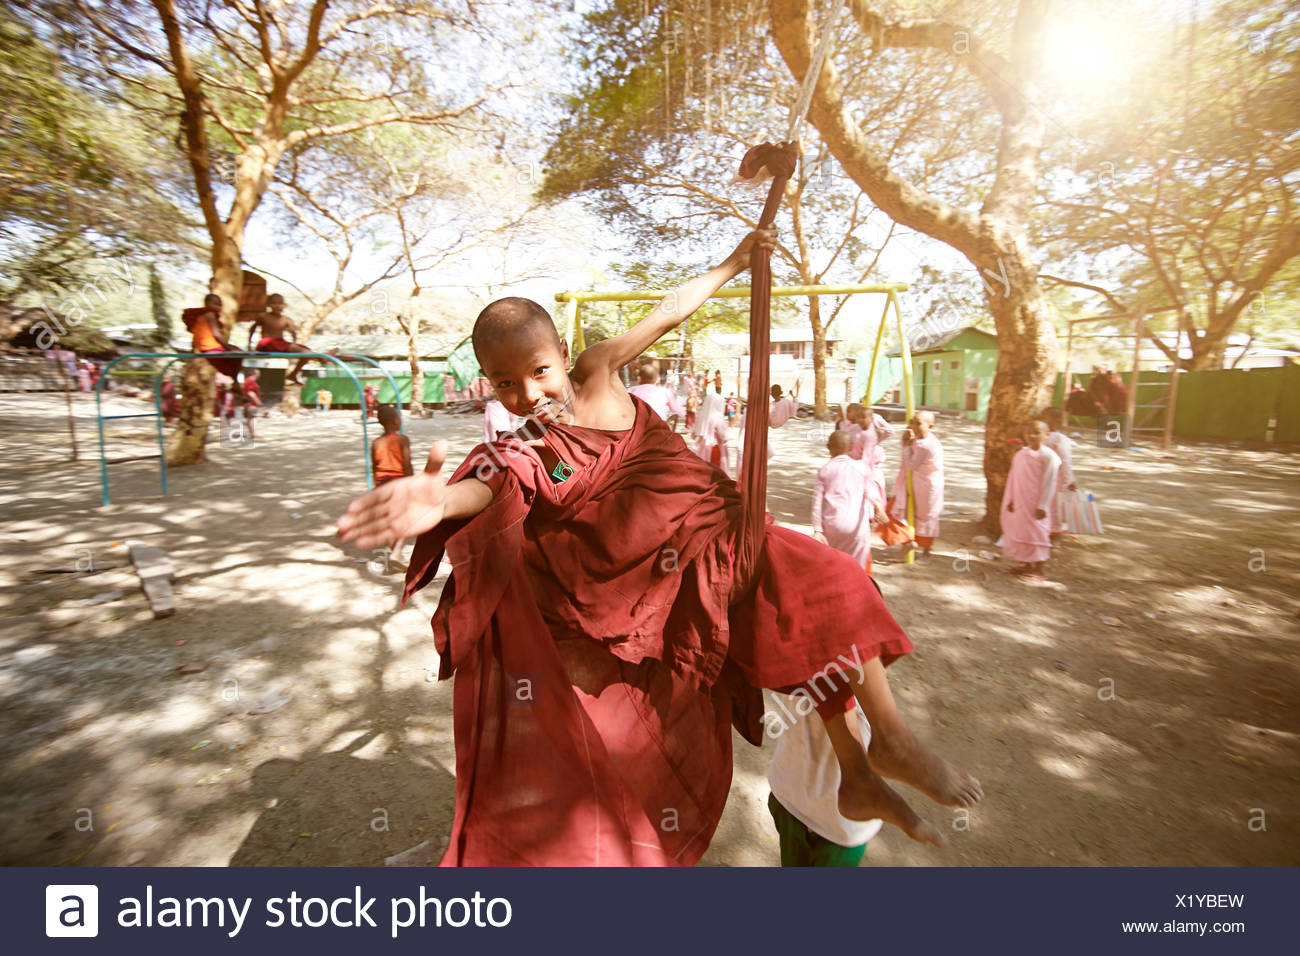 Students in the monk school are playing in the school yard - Stock Image